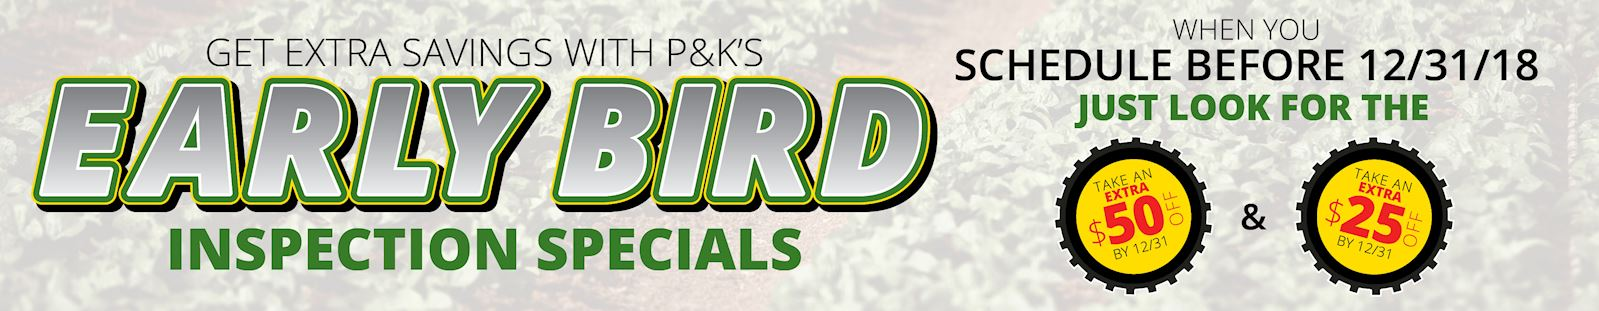 Save with our P&K Advantage Early Bird Inspection Specials